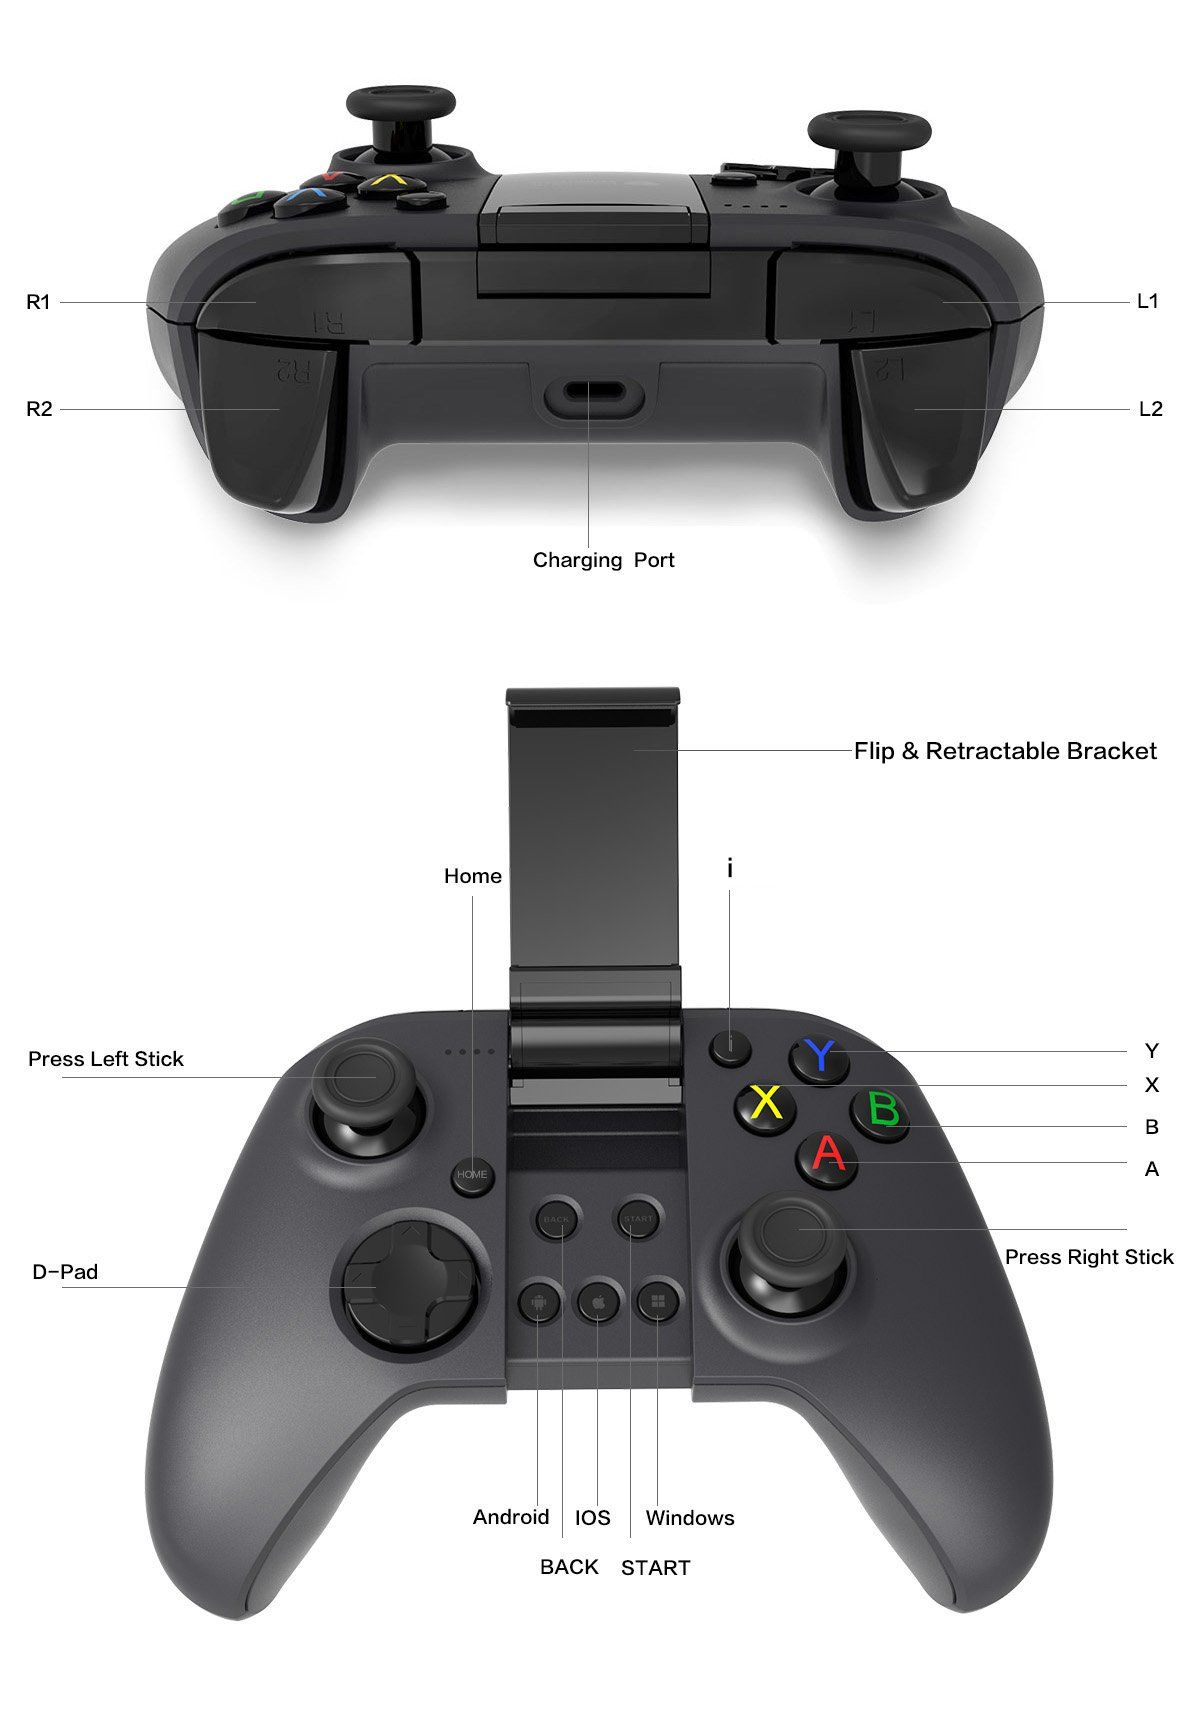 Game Controller MYGT Bluetooth Wireless Gaming Controller Gamepad for Android Smartphone Windows PC PS3 VR TV Box by MYGT (Image #6)